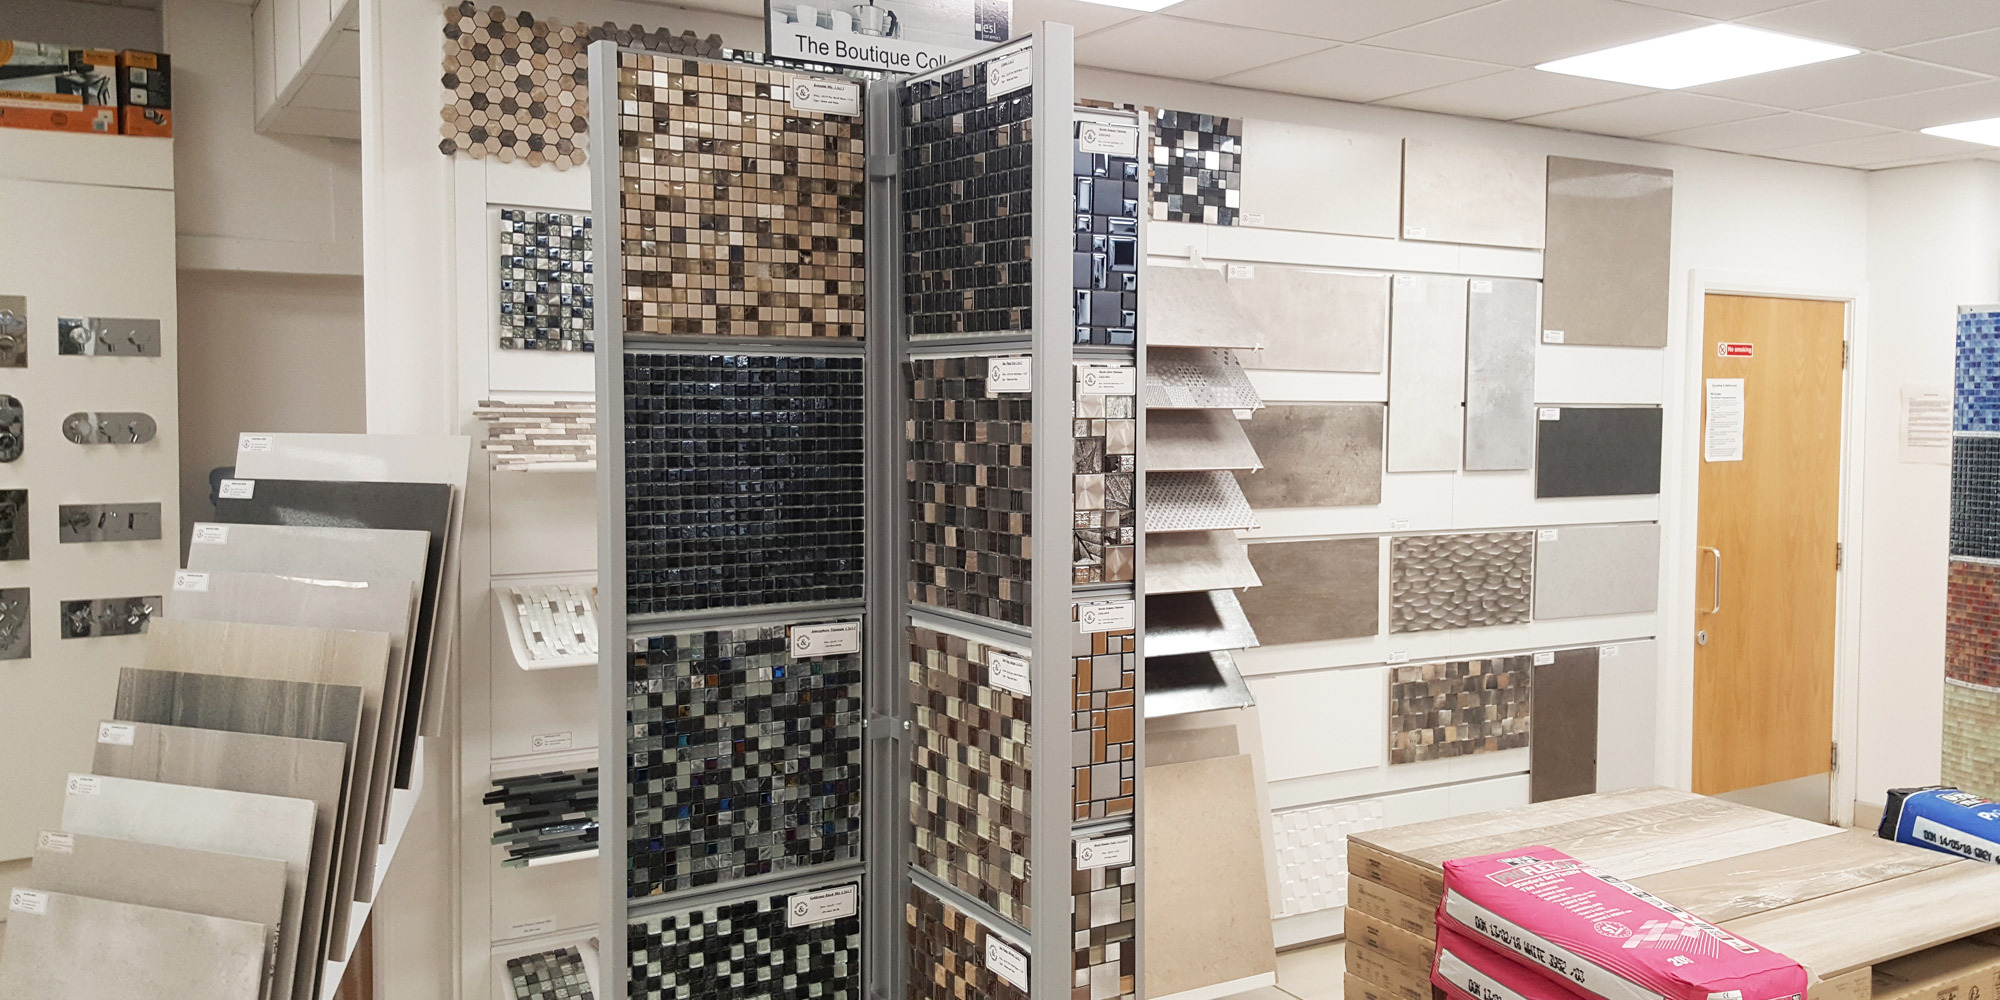 Stevenage Tile Showroom | Eurotiles and Bathrooms | Unit 13, Arlington Business Park, Whittle Way, Stevenage, SG1 2BD, United Kingdom